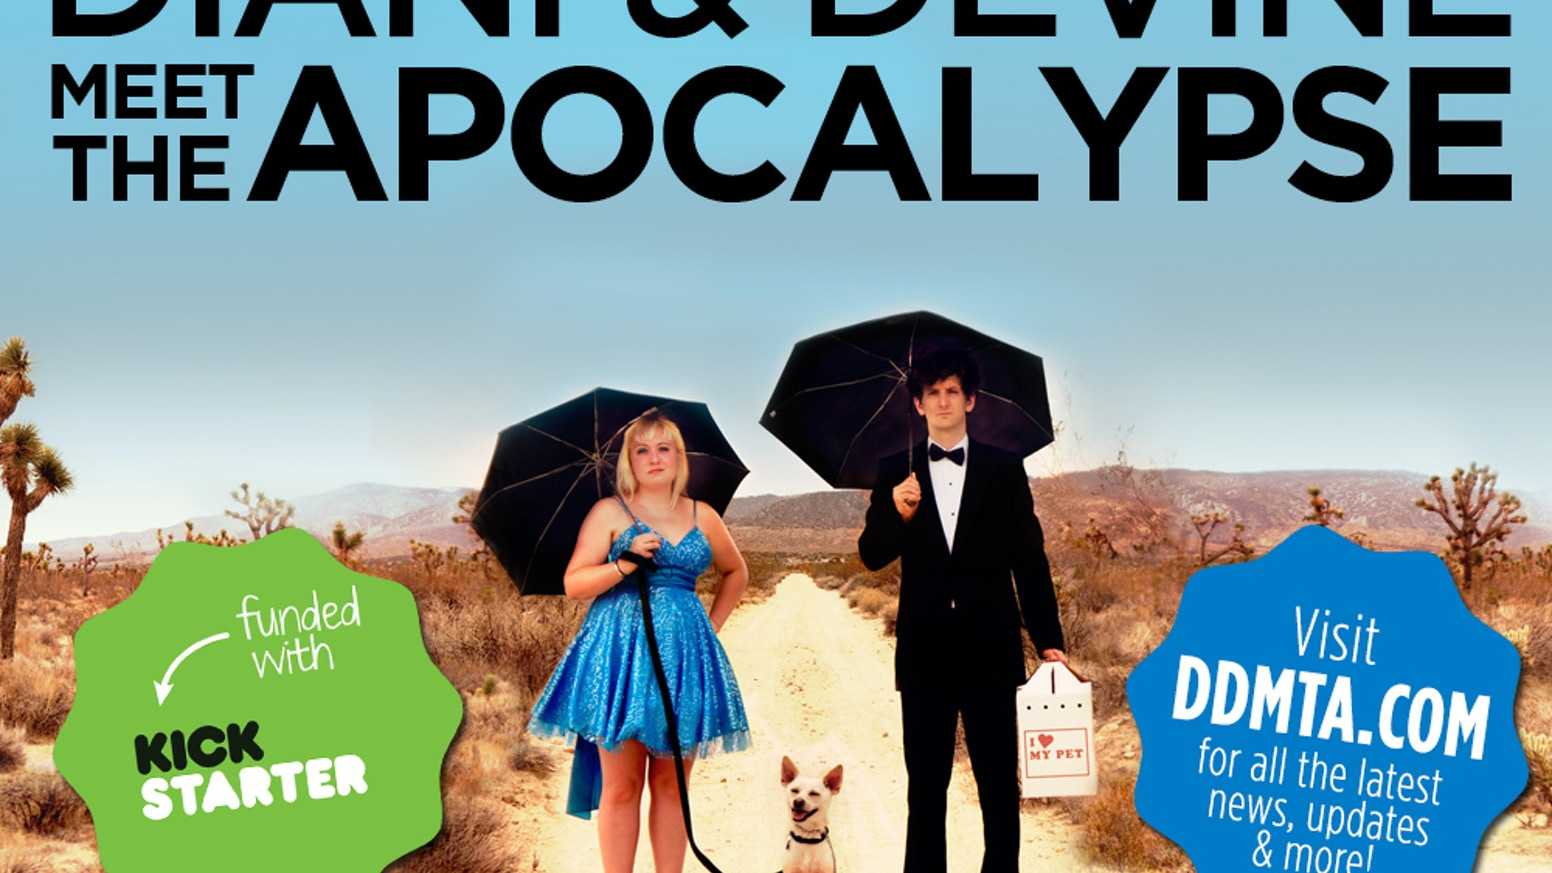 Two comedians. One Apocalypse. Currently in post production. Pre-orders available!